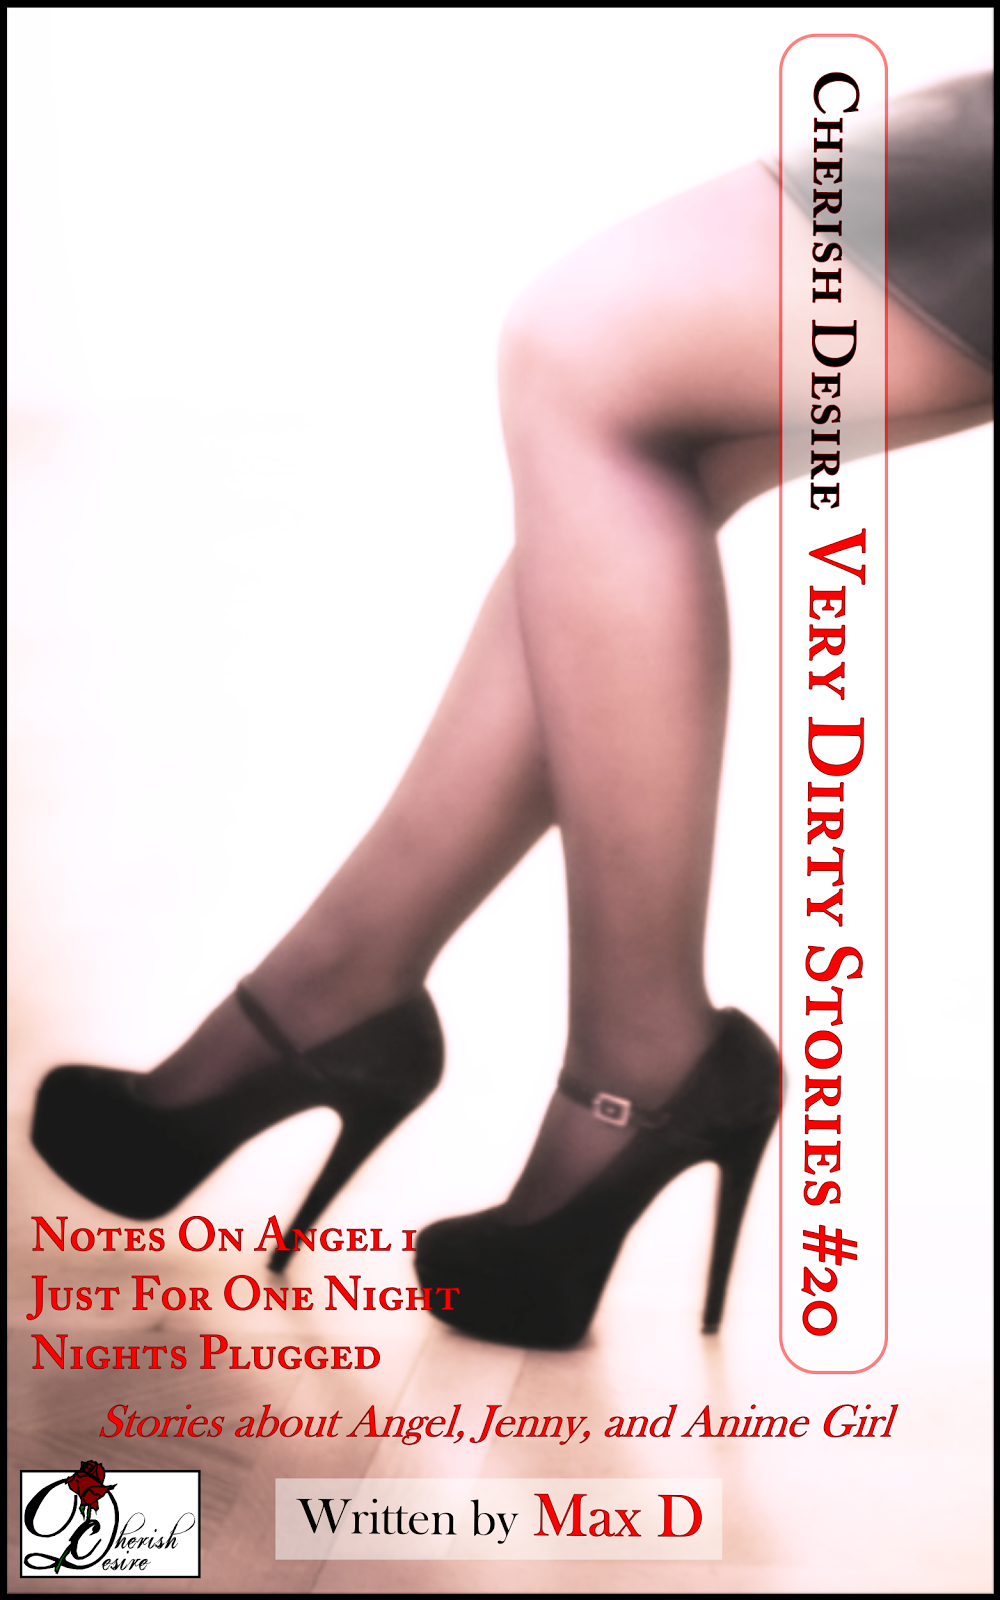 Cherish Desire: Very Dirty Stories #20, Max D, erotica